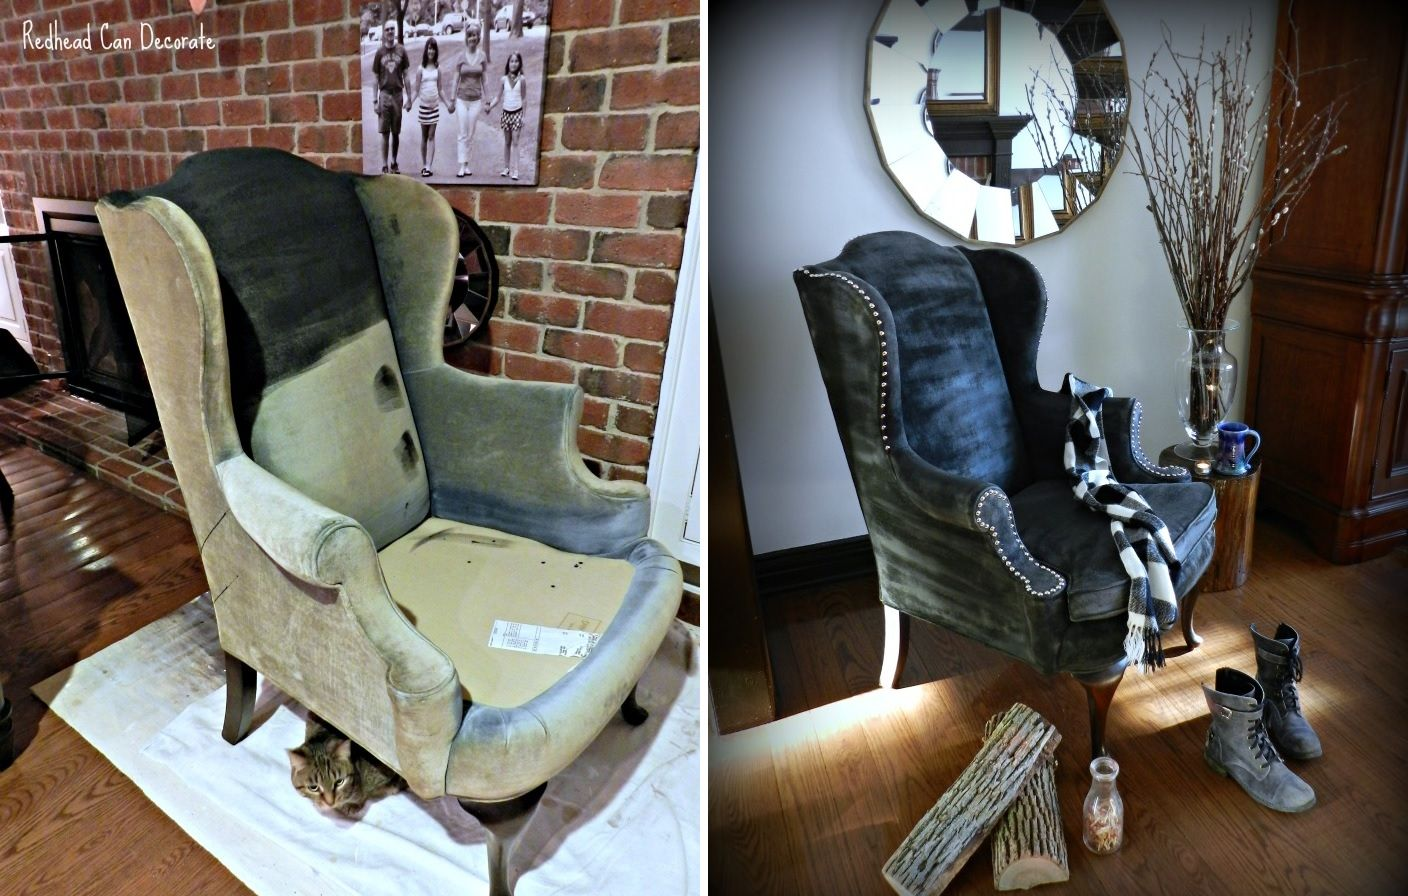 upholstery and the chair